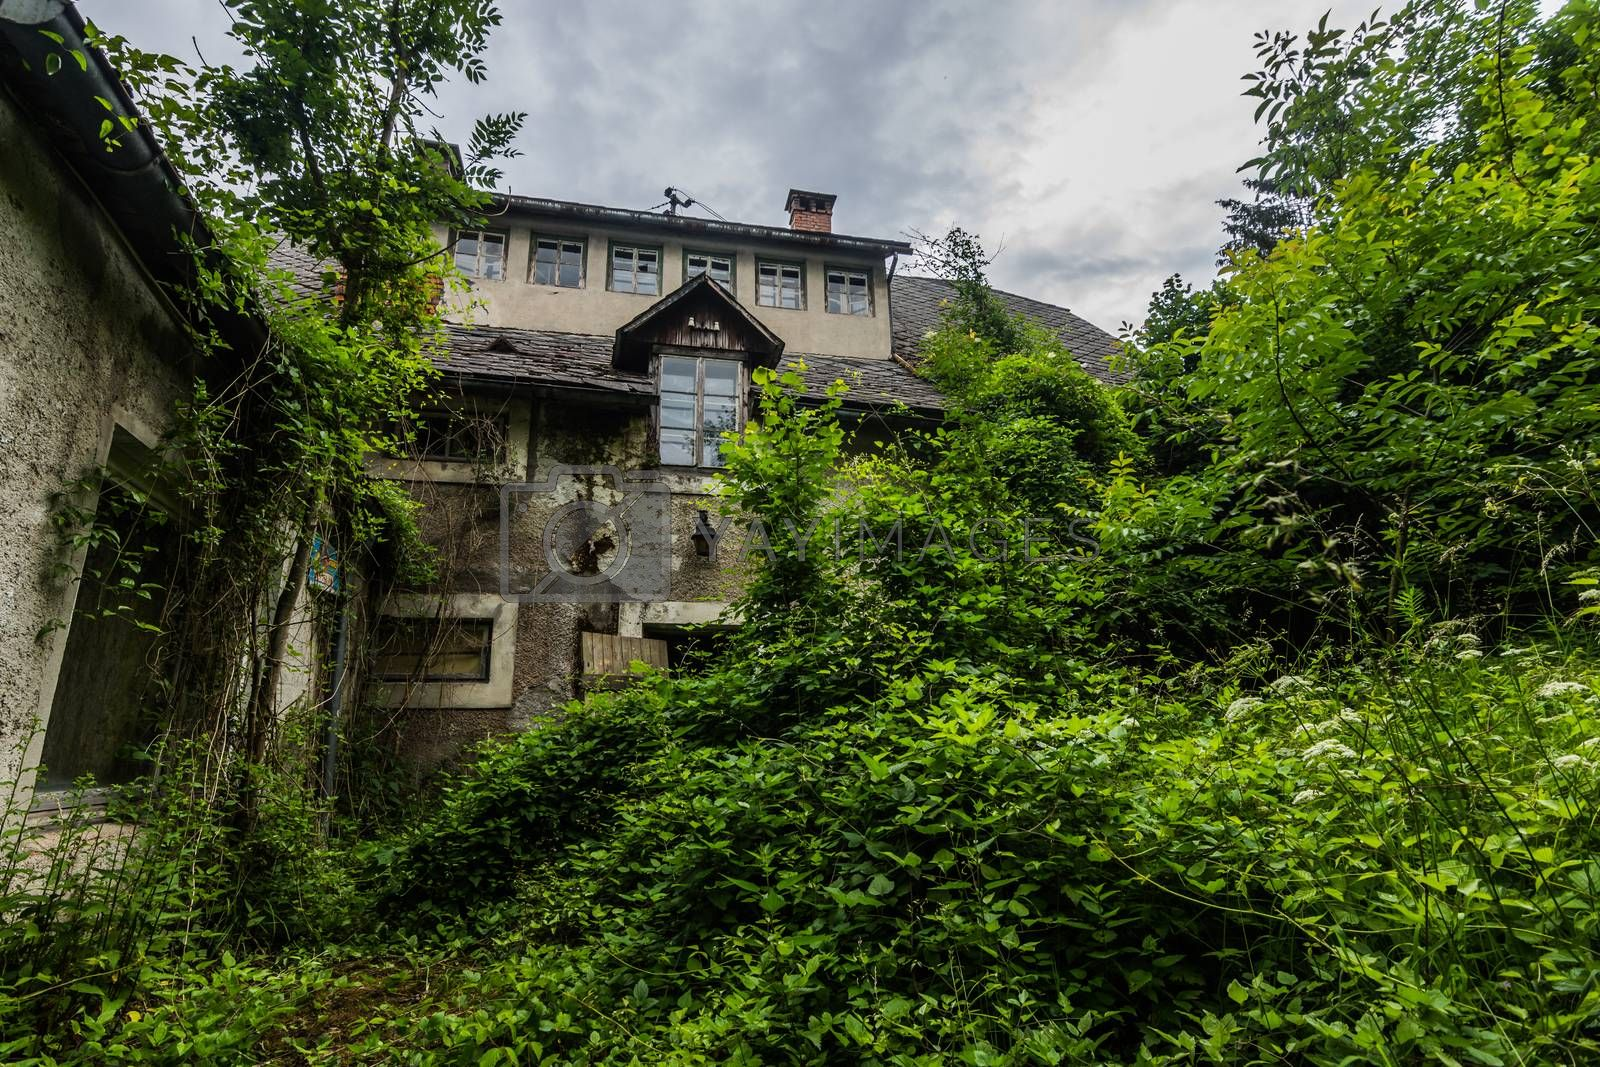 overgrown old abandoned house with tall shrubs in the countryside